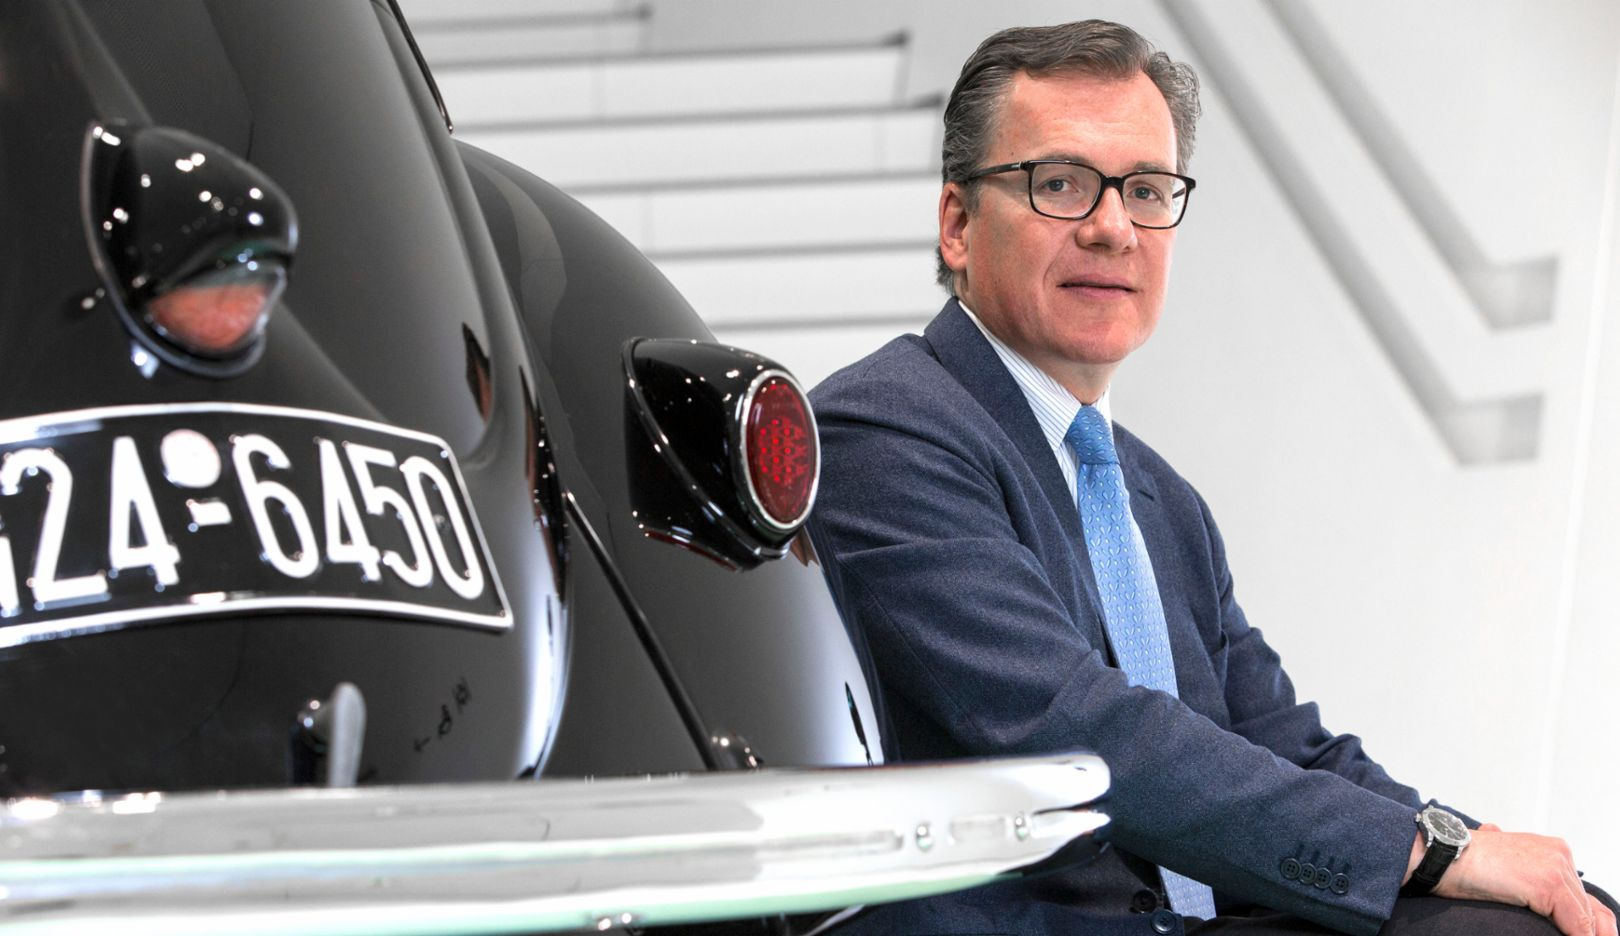 Marcus Baur, CEO of the Bocar Group, 2016, Porsche Consulting GmbH